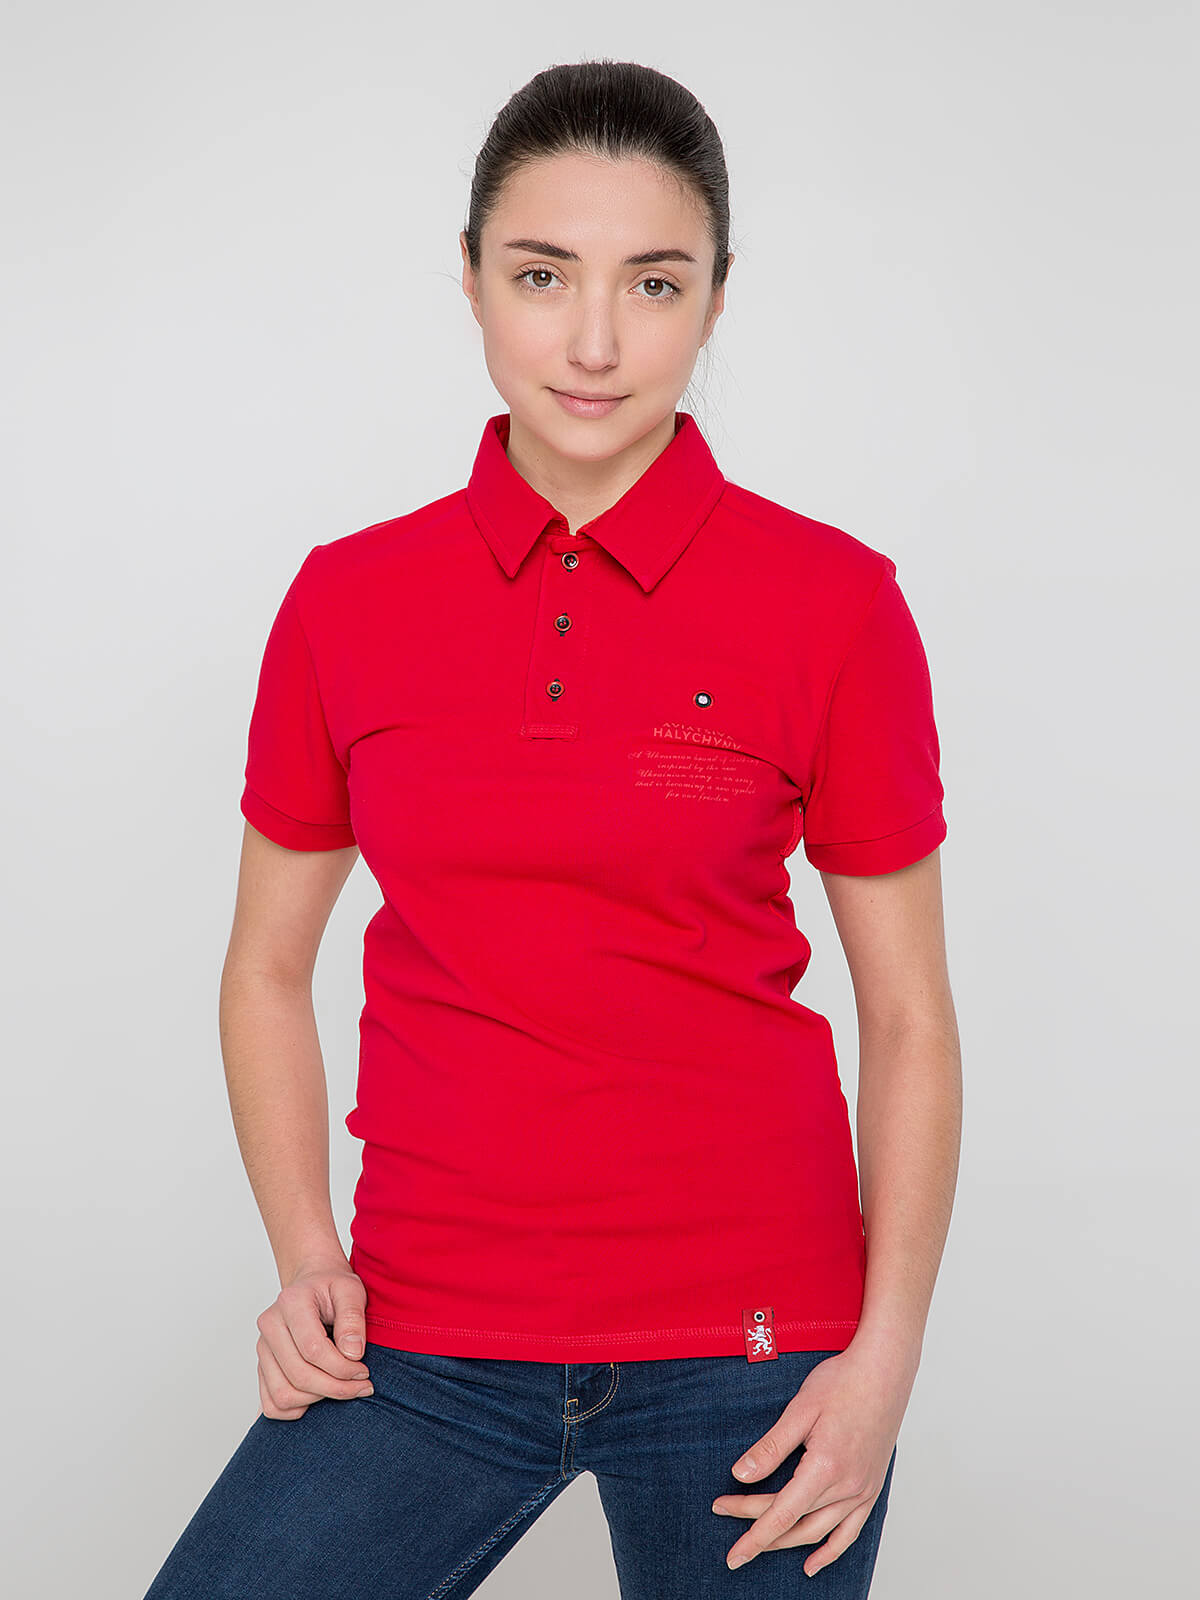 Women's Polo Shirt Wings. Color red. Unisex polo (men's sizes).